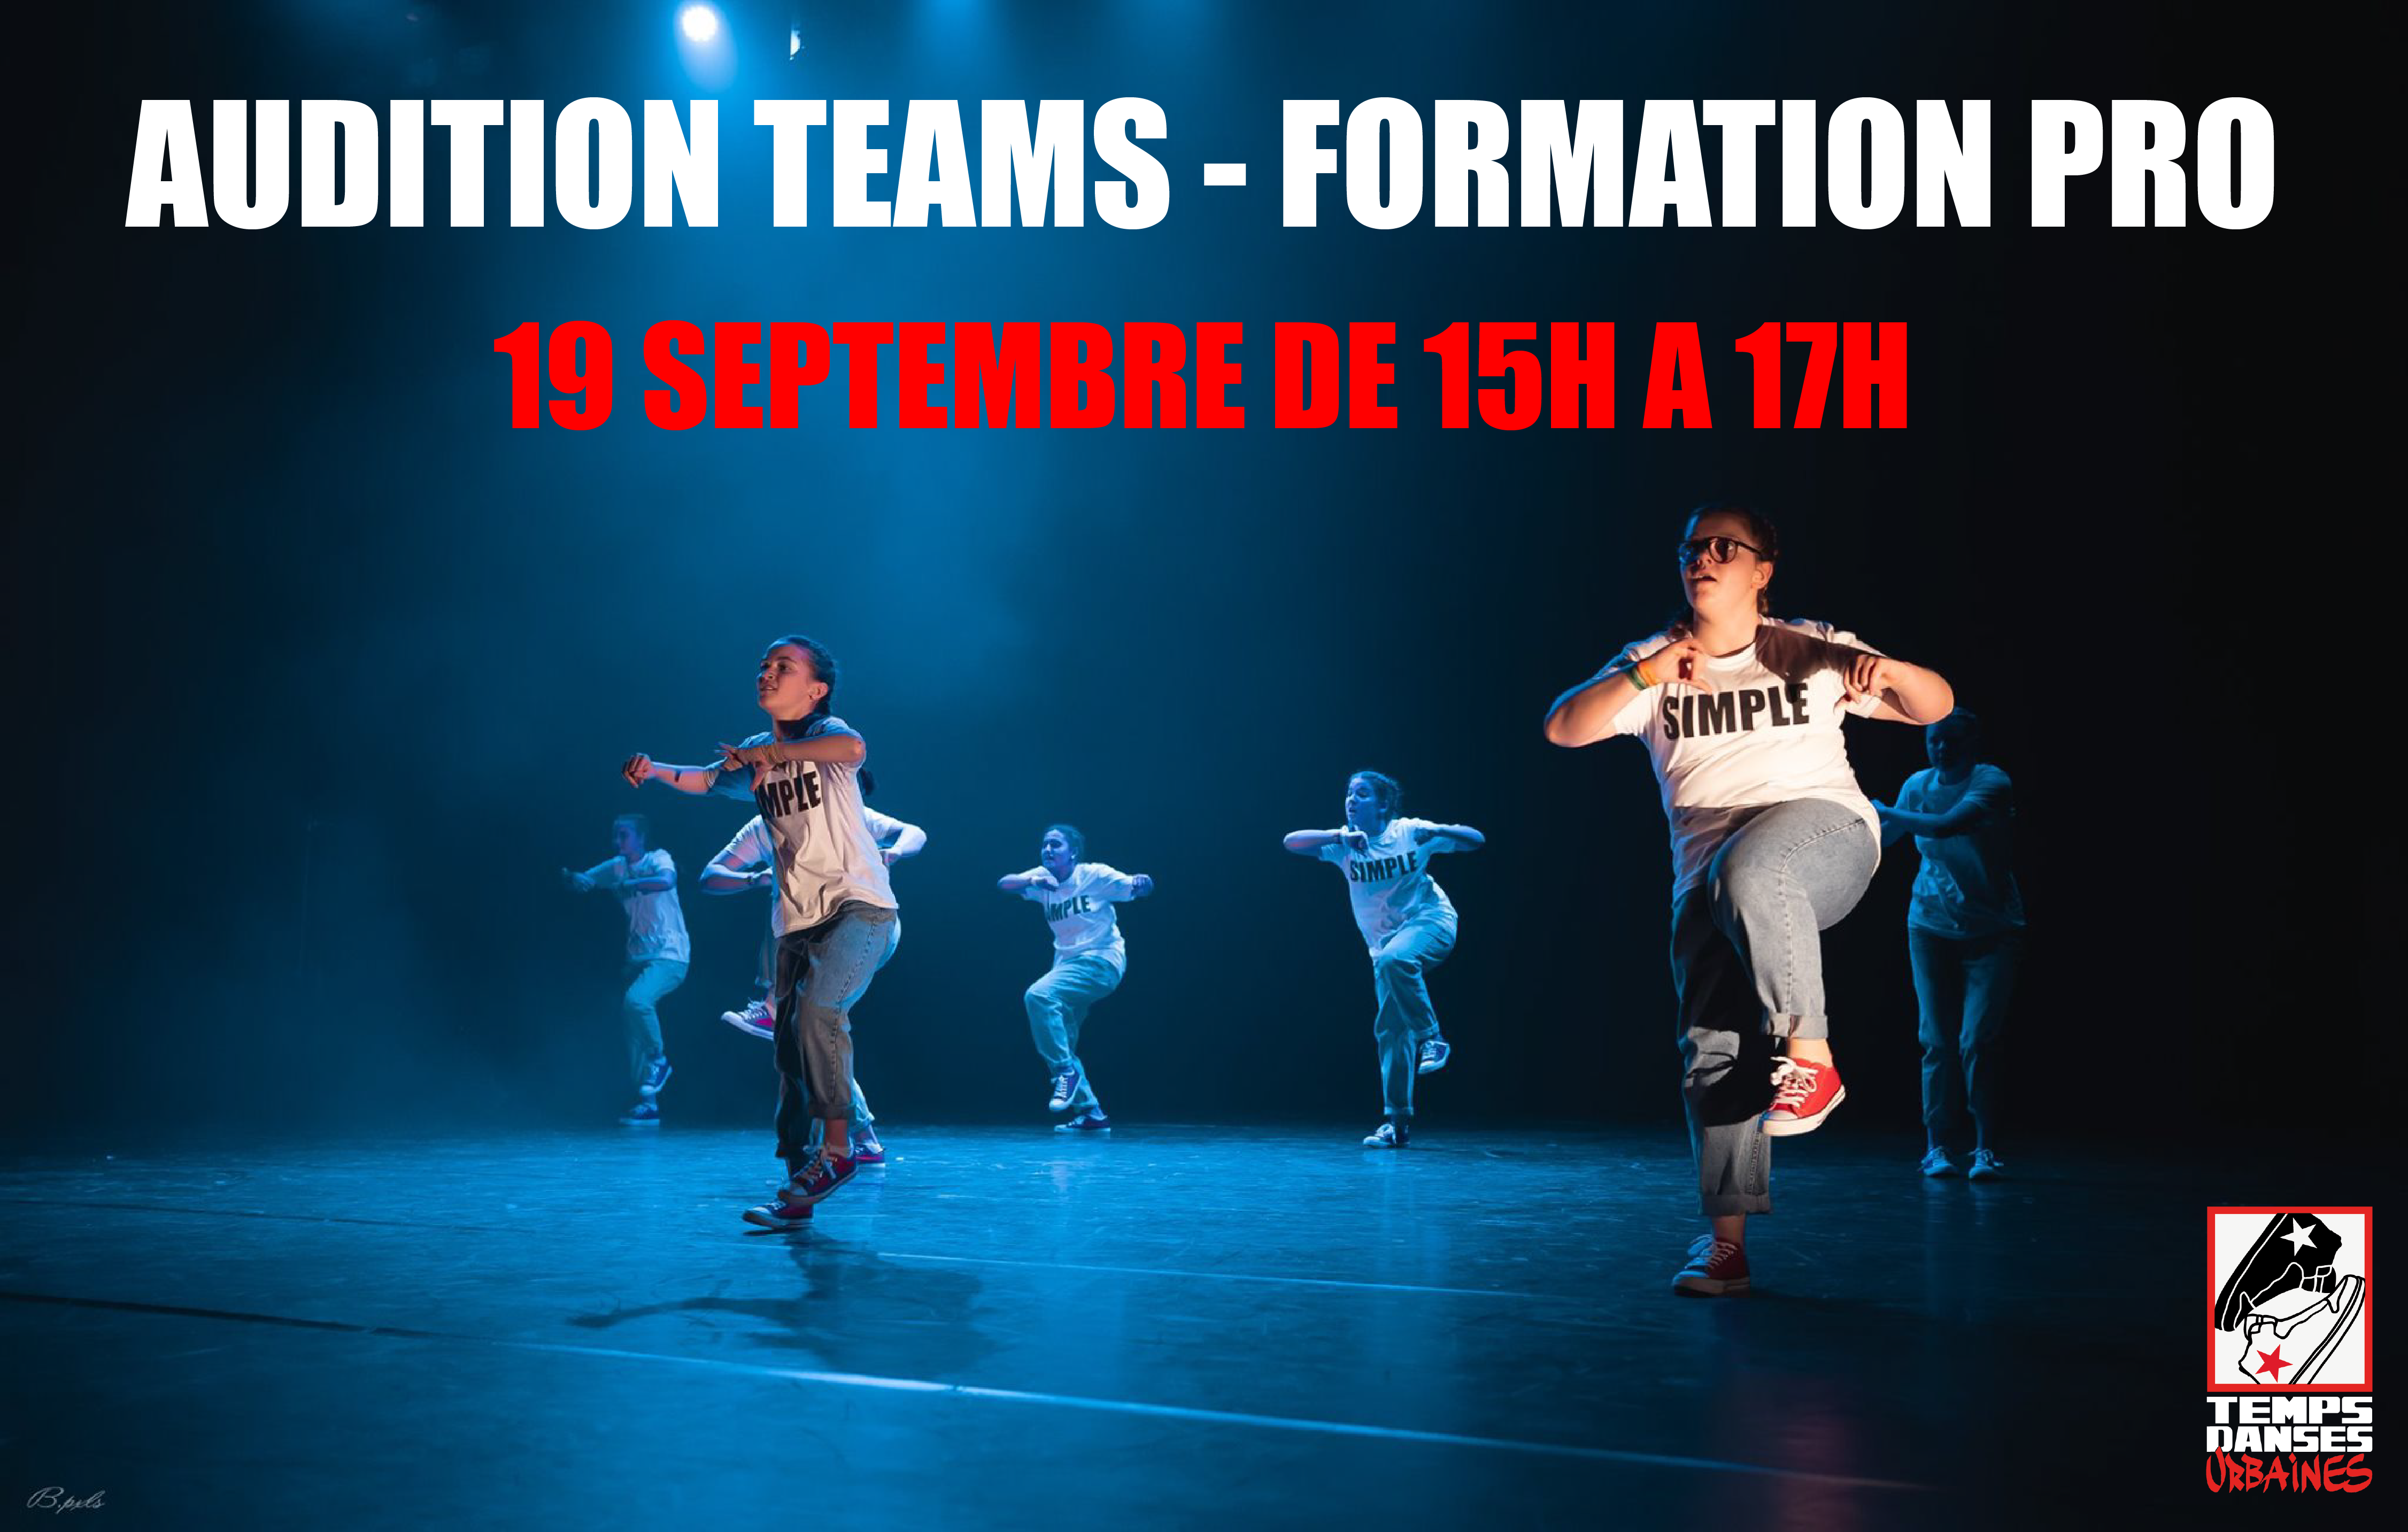 audition team formation pro